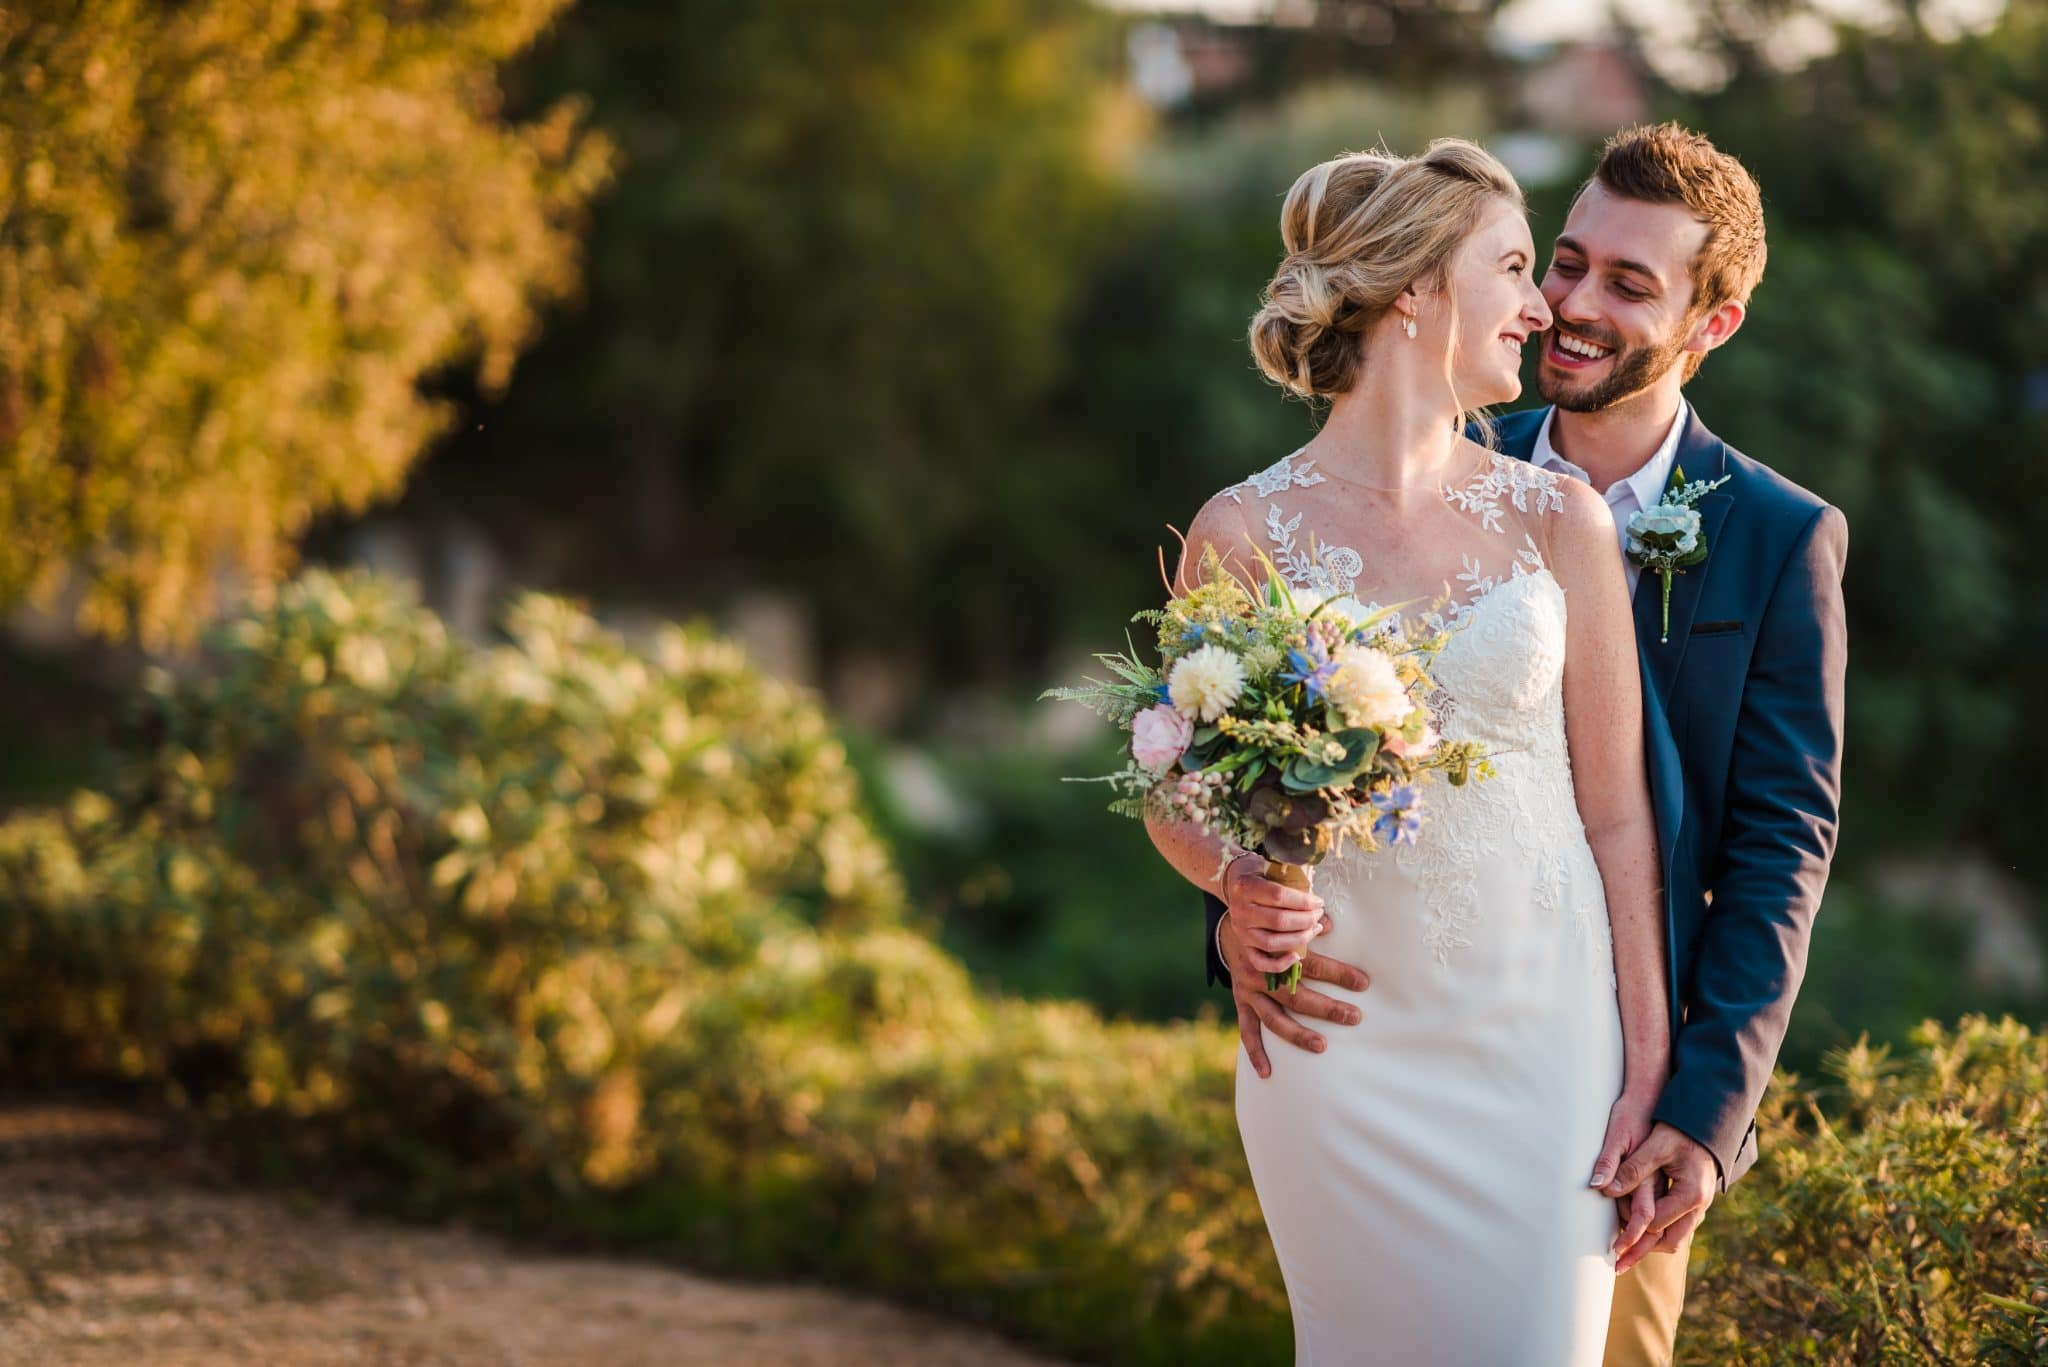 Cyprus Wedding Videography - A great expression on Adam's face when he hugs Lydia, the photo was taken at the top of the stairs